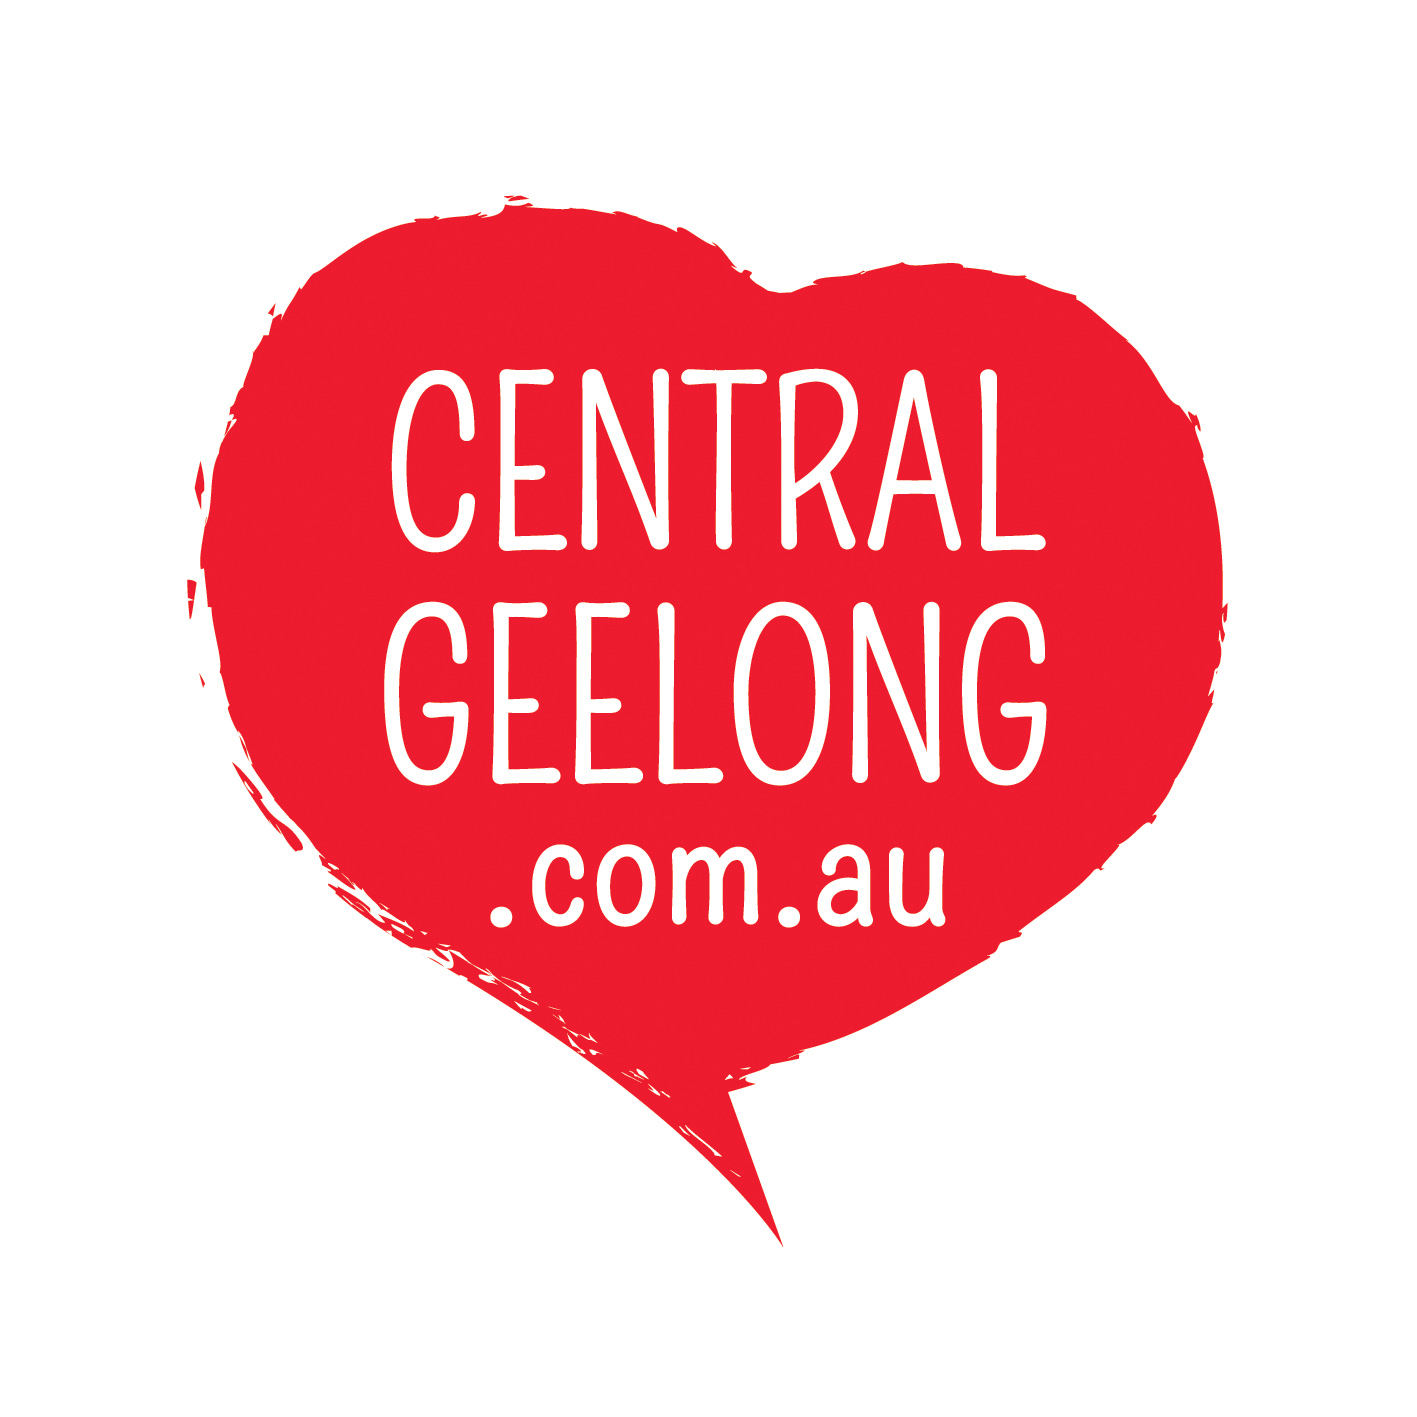 Copy of Central Geelong Marketing logo